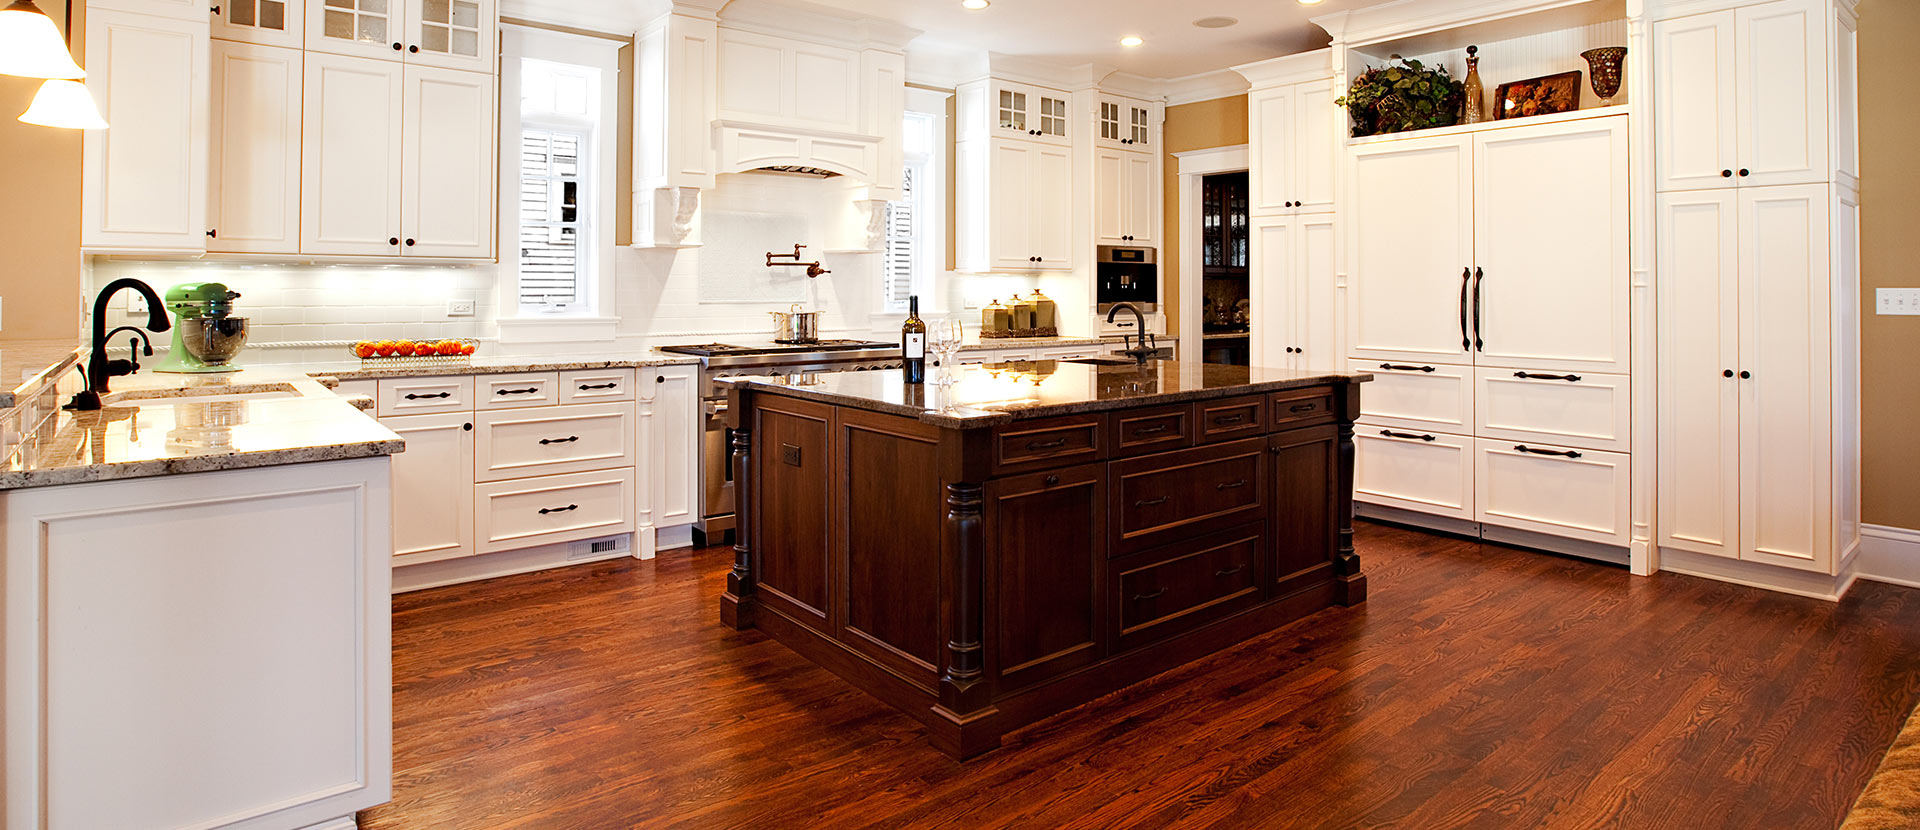 5 Inspiring Cabinet Ideas For Your Kitchen Builders Cabinet